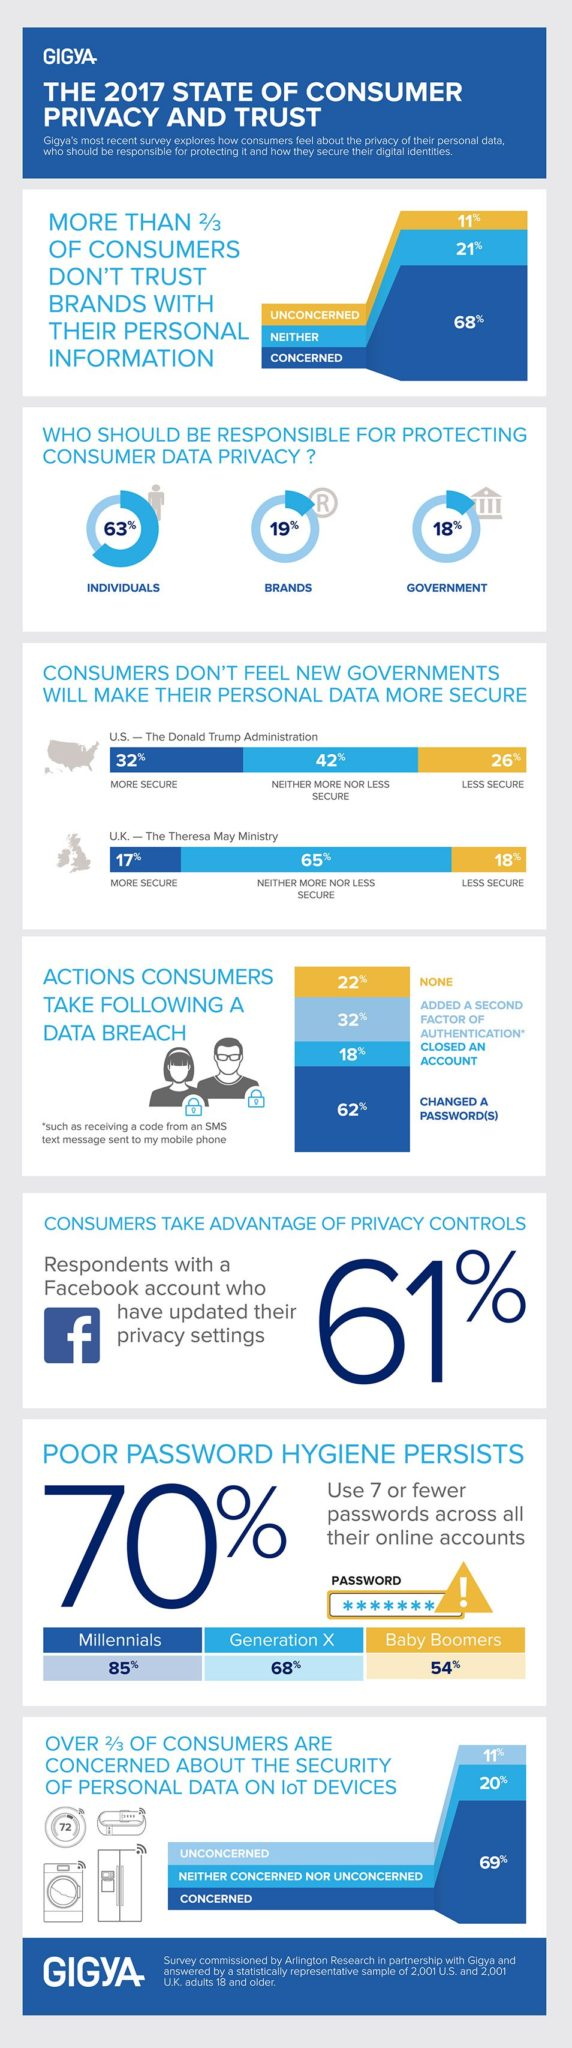 Your customers don't trust you with their personal information [infographic]